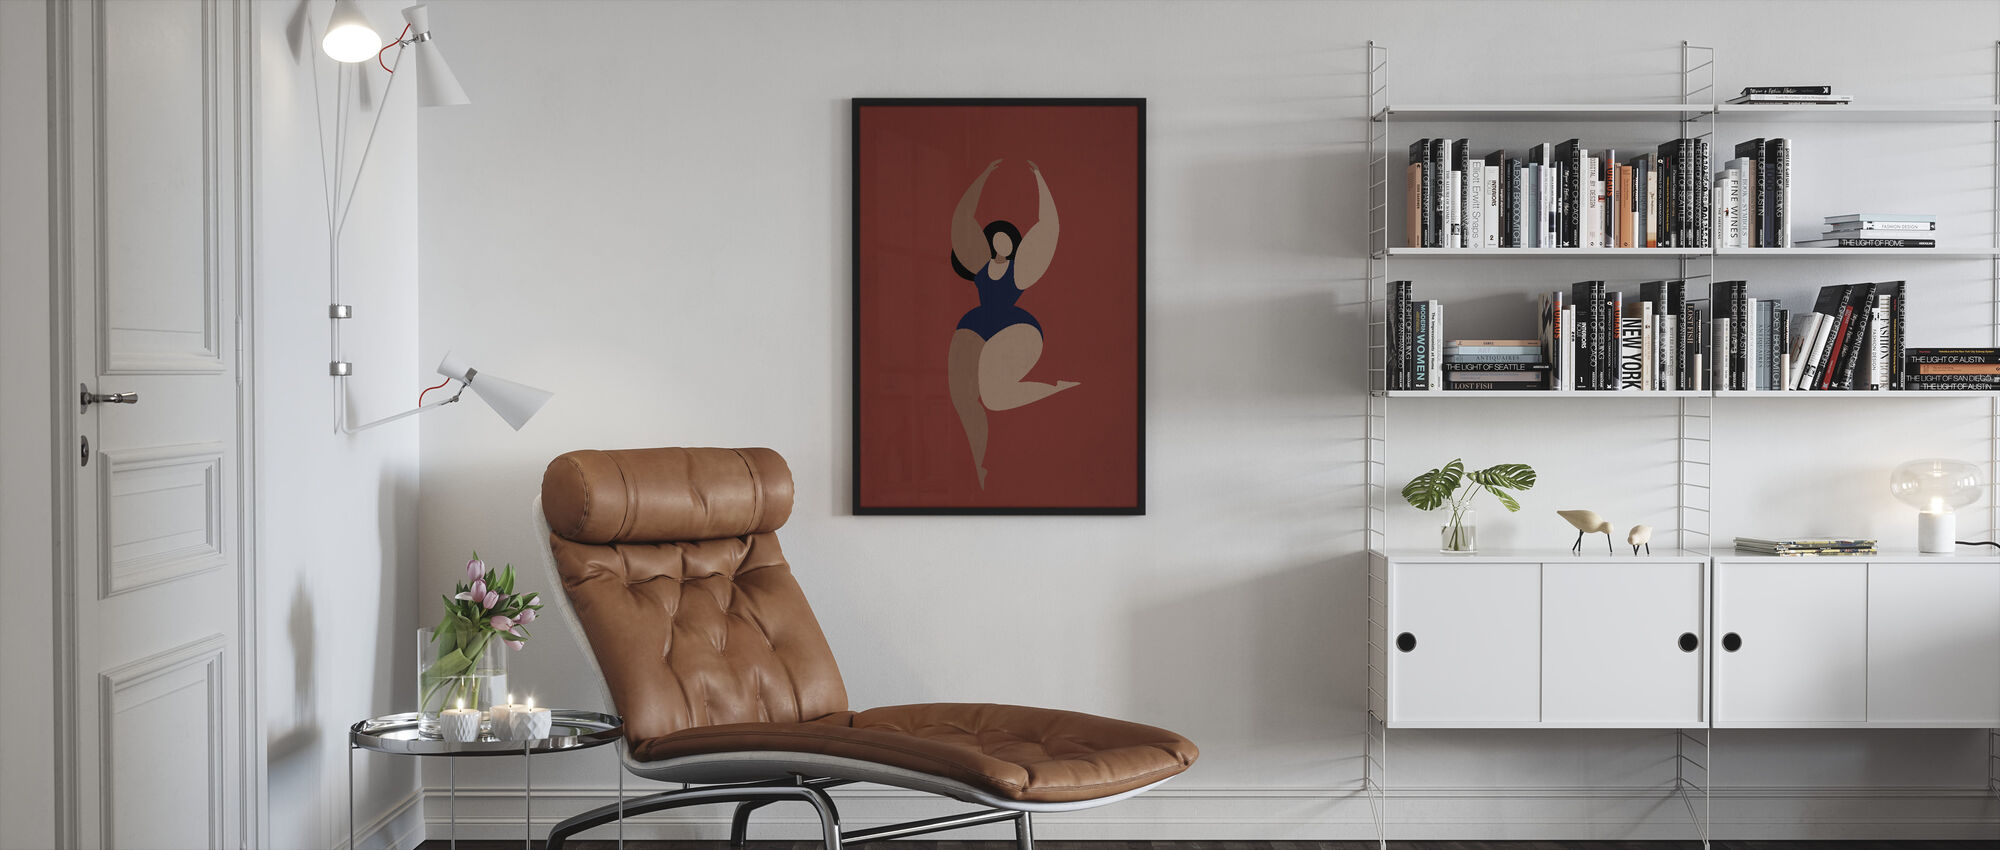 Prima Ballerina - Framed print - Living Room